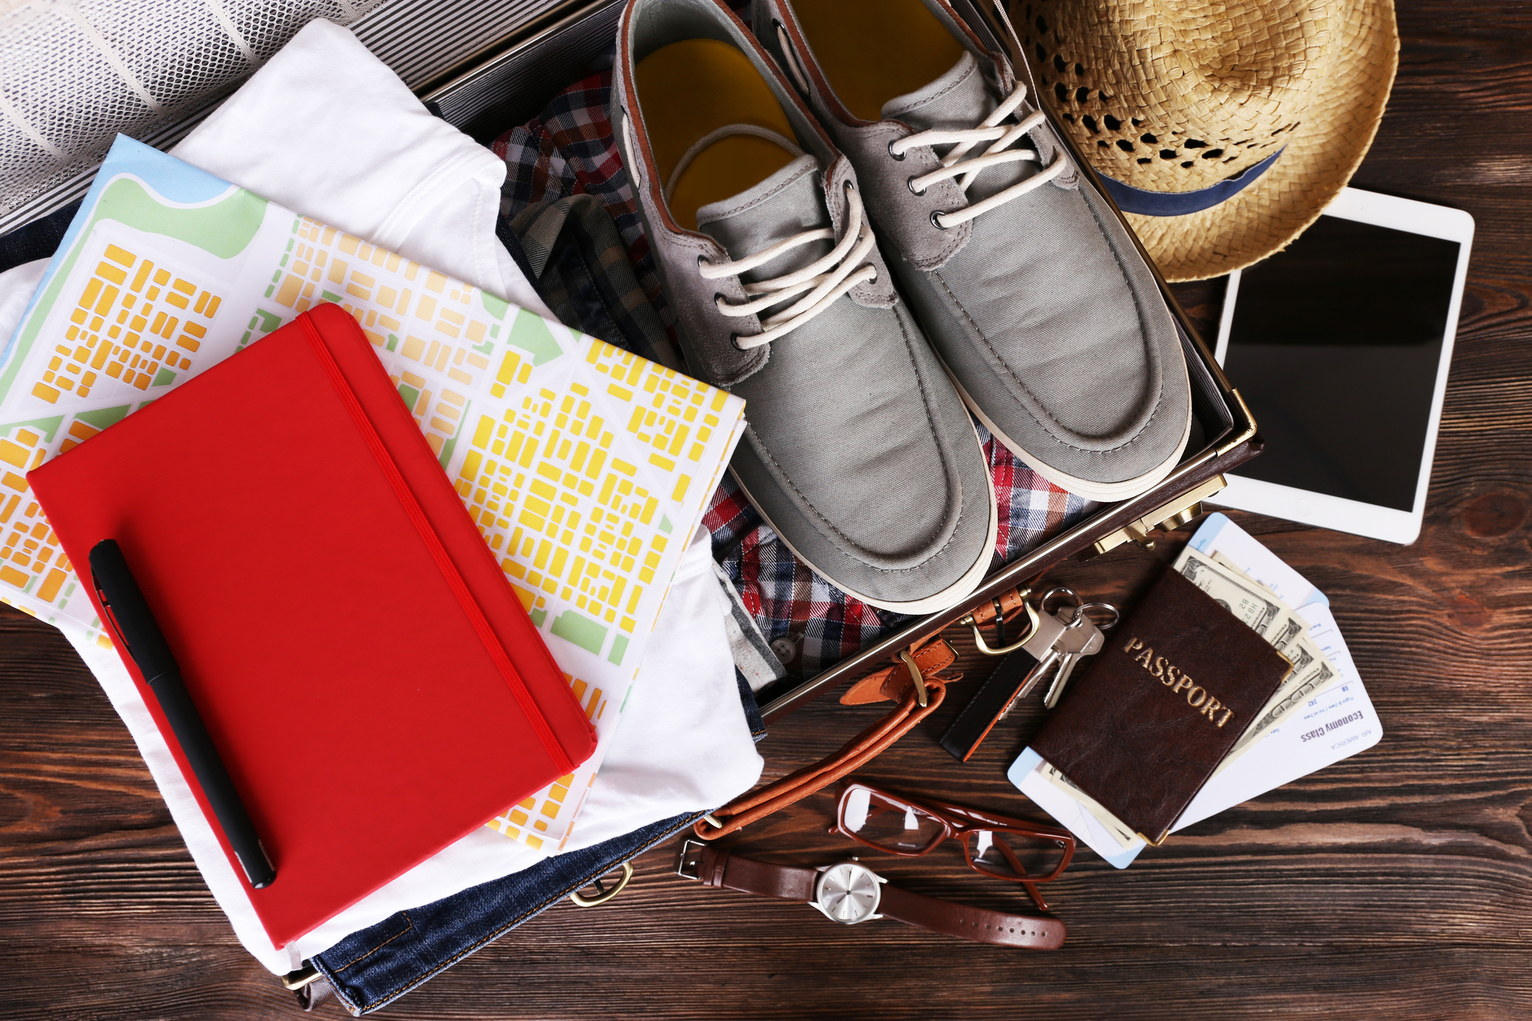 Ways to Reduce Spending While You Travel